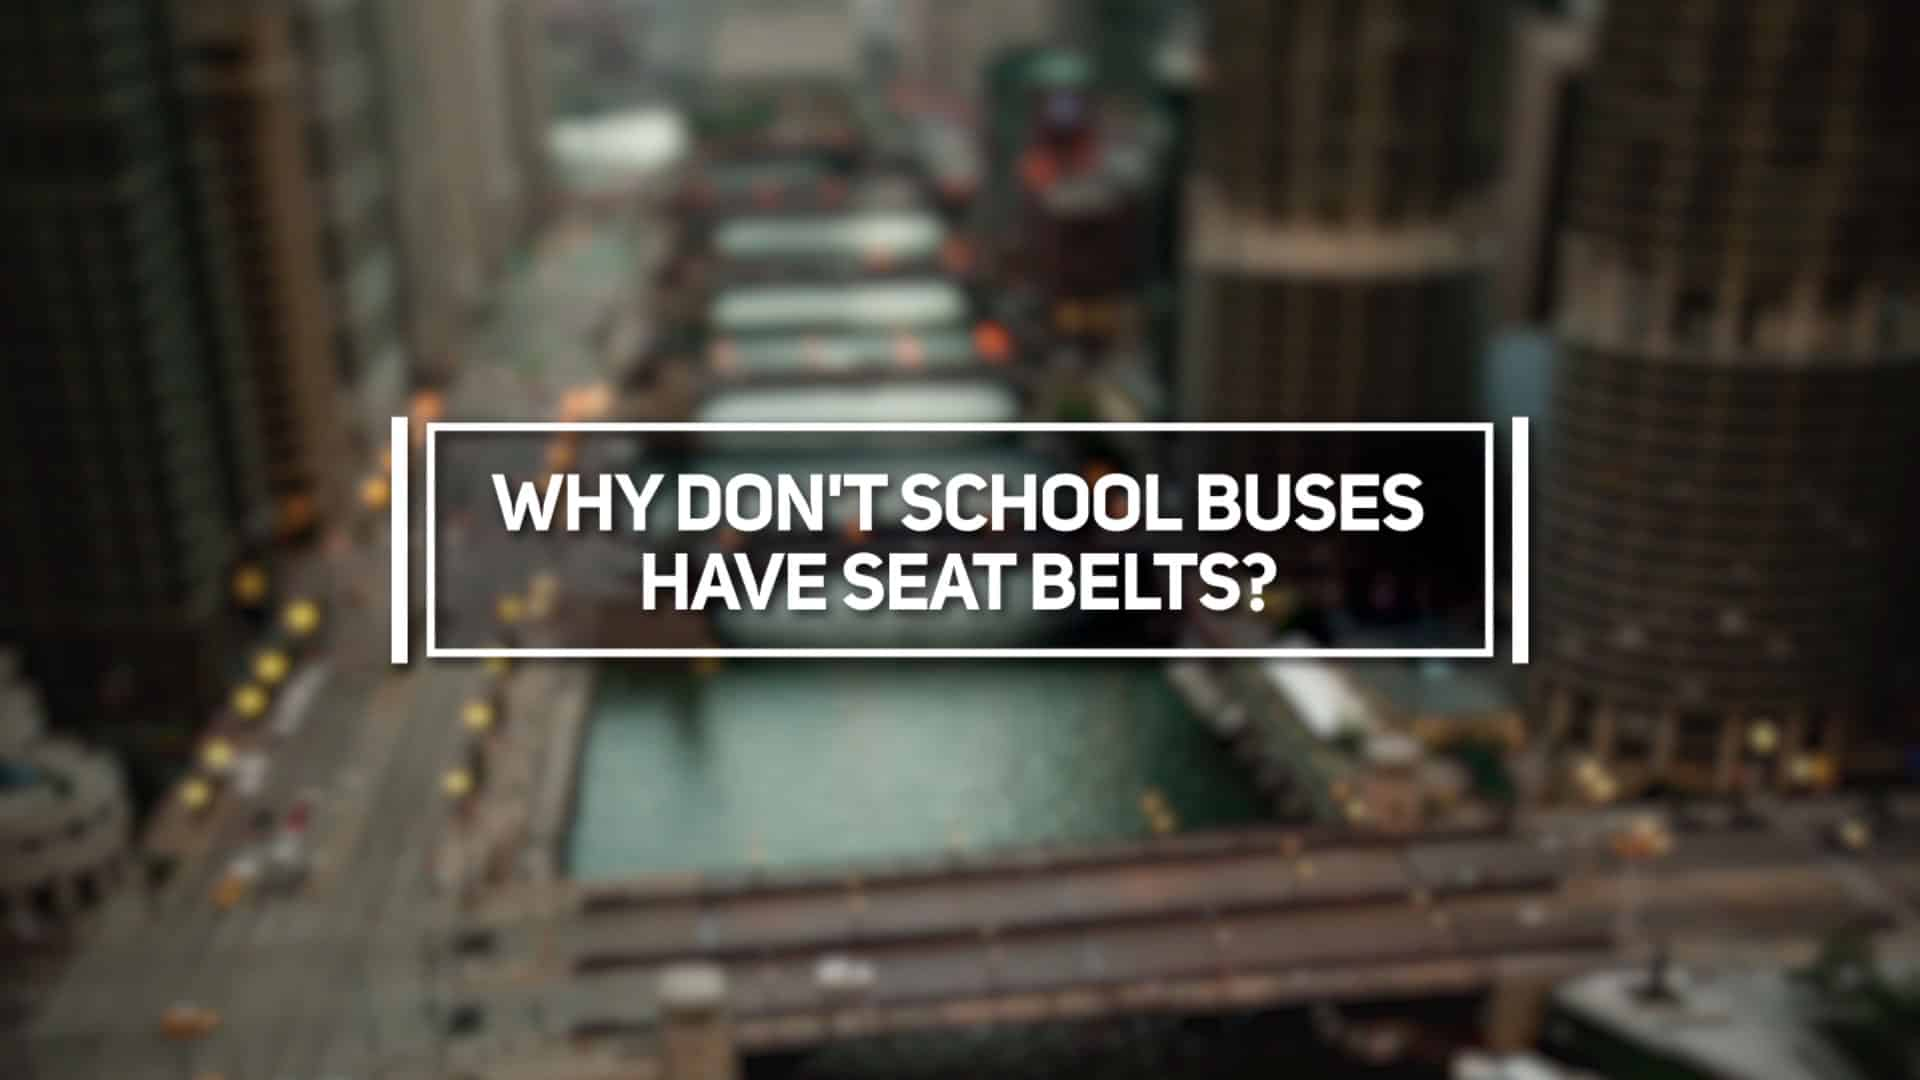 Why Don't School Buses Have Seat Belts?